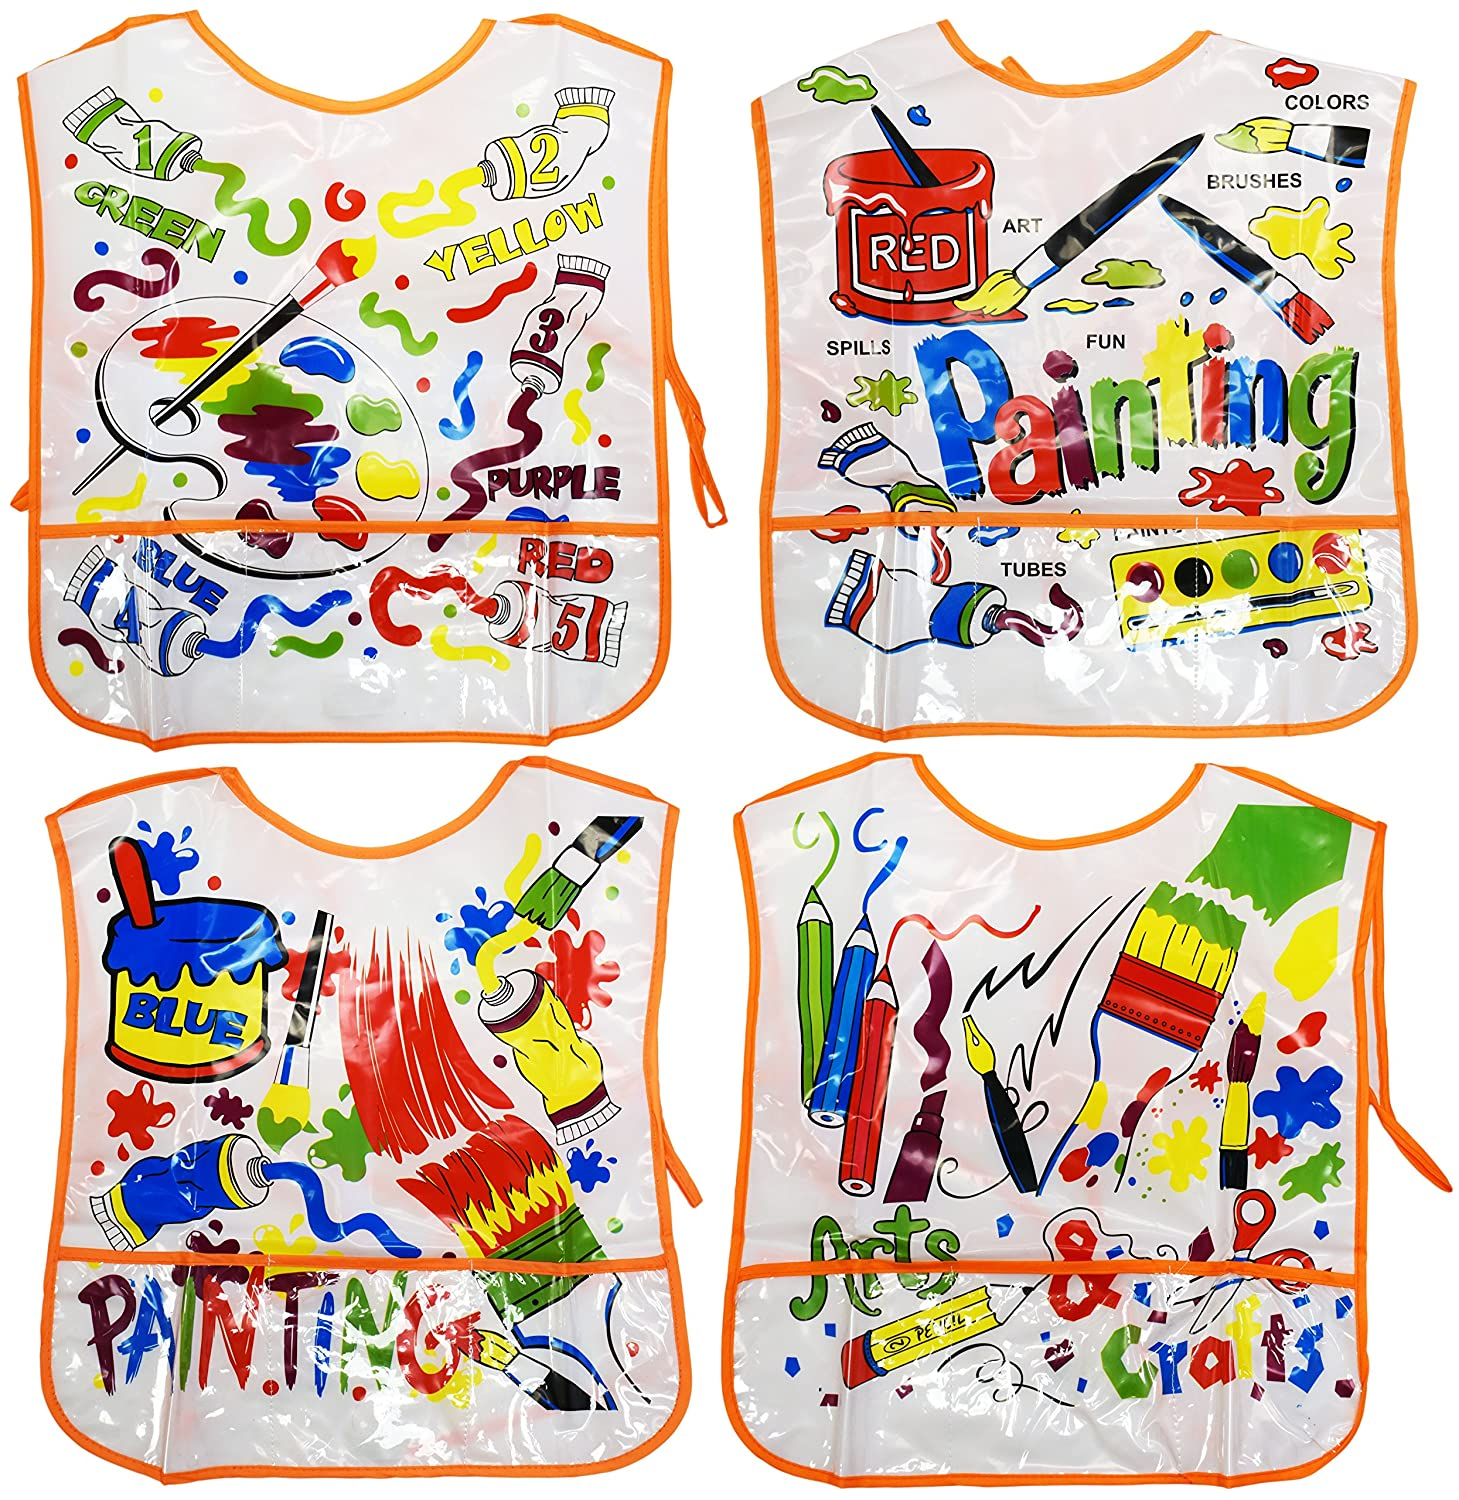 Set of 4 Kiddie Artist Smocks! 4 Assorted Bright and Beautiful Designs - 14x16 - Soft Vinyl - Pockets - Wipes Clean with Damp Cloth - Perfect for any Little Artist in Your Life! Black Duck Brand